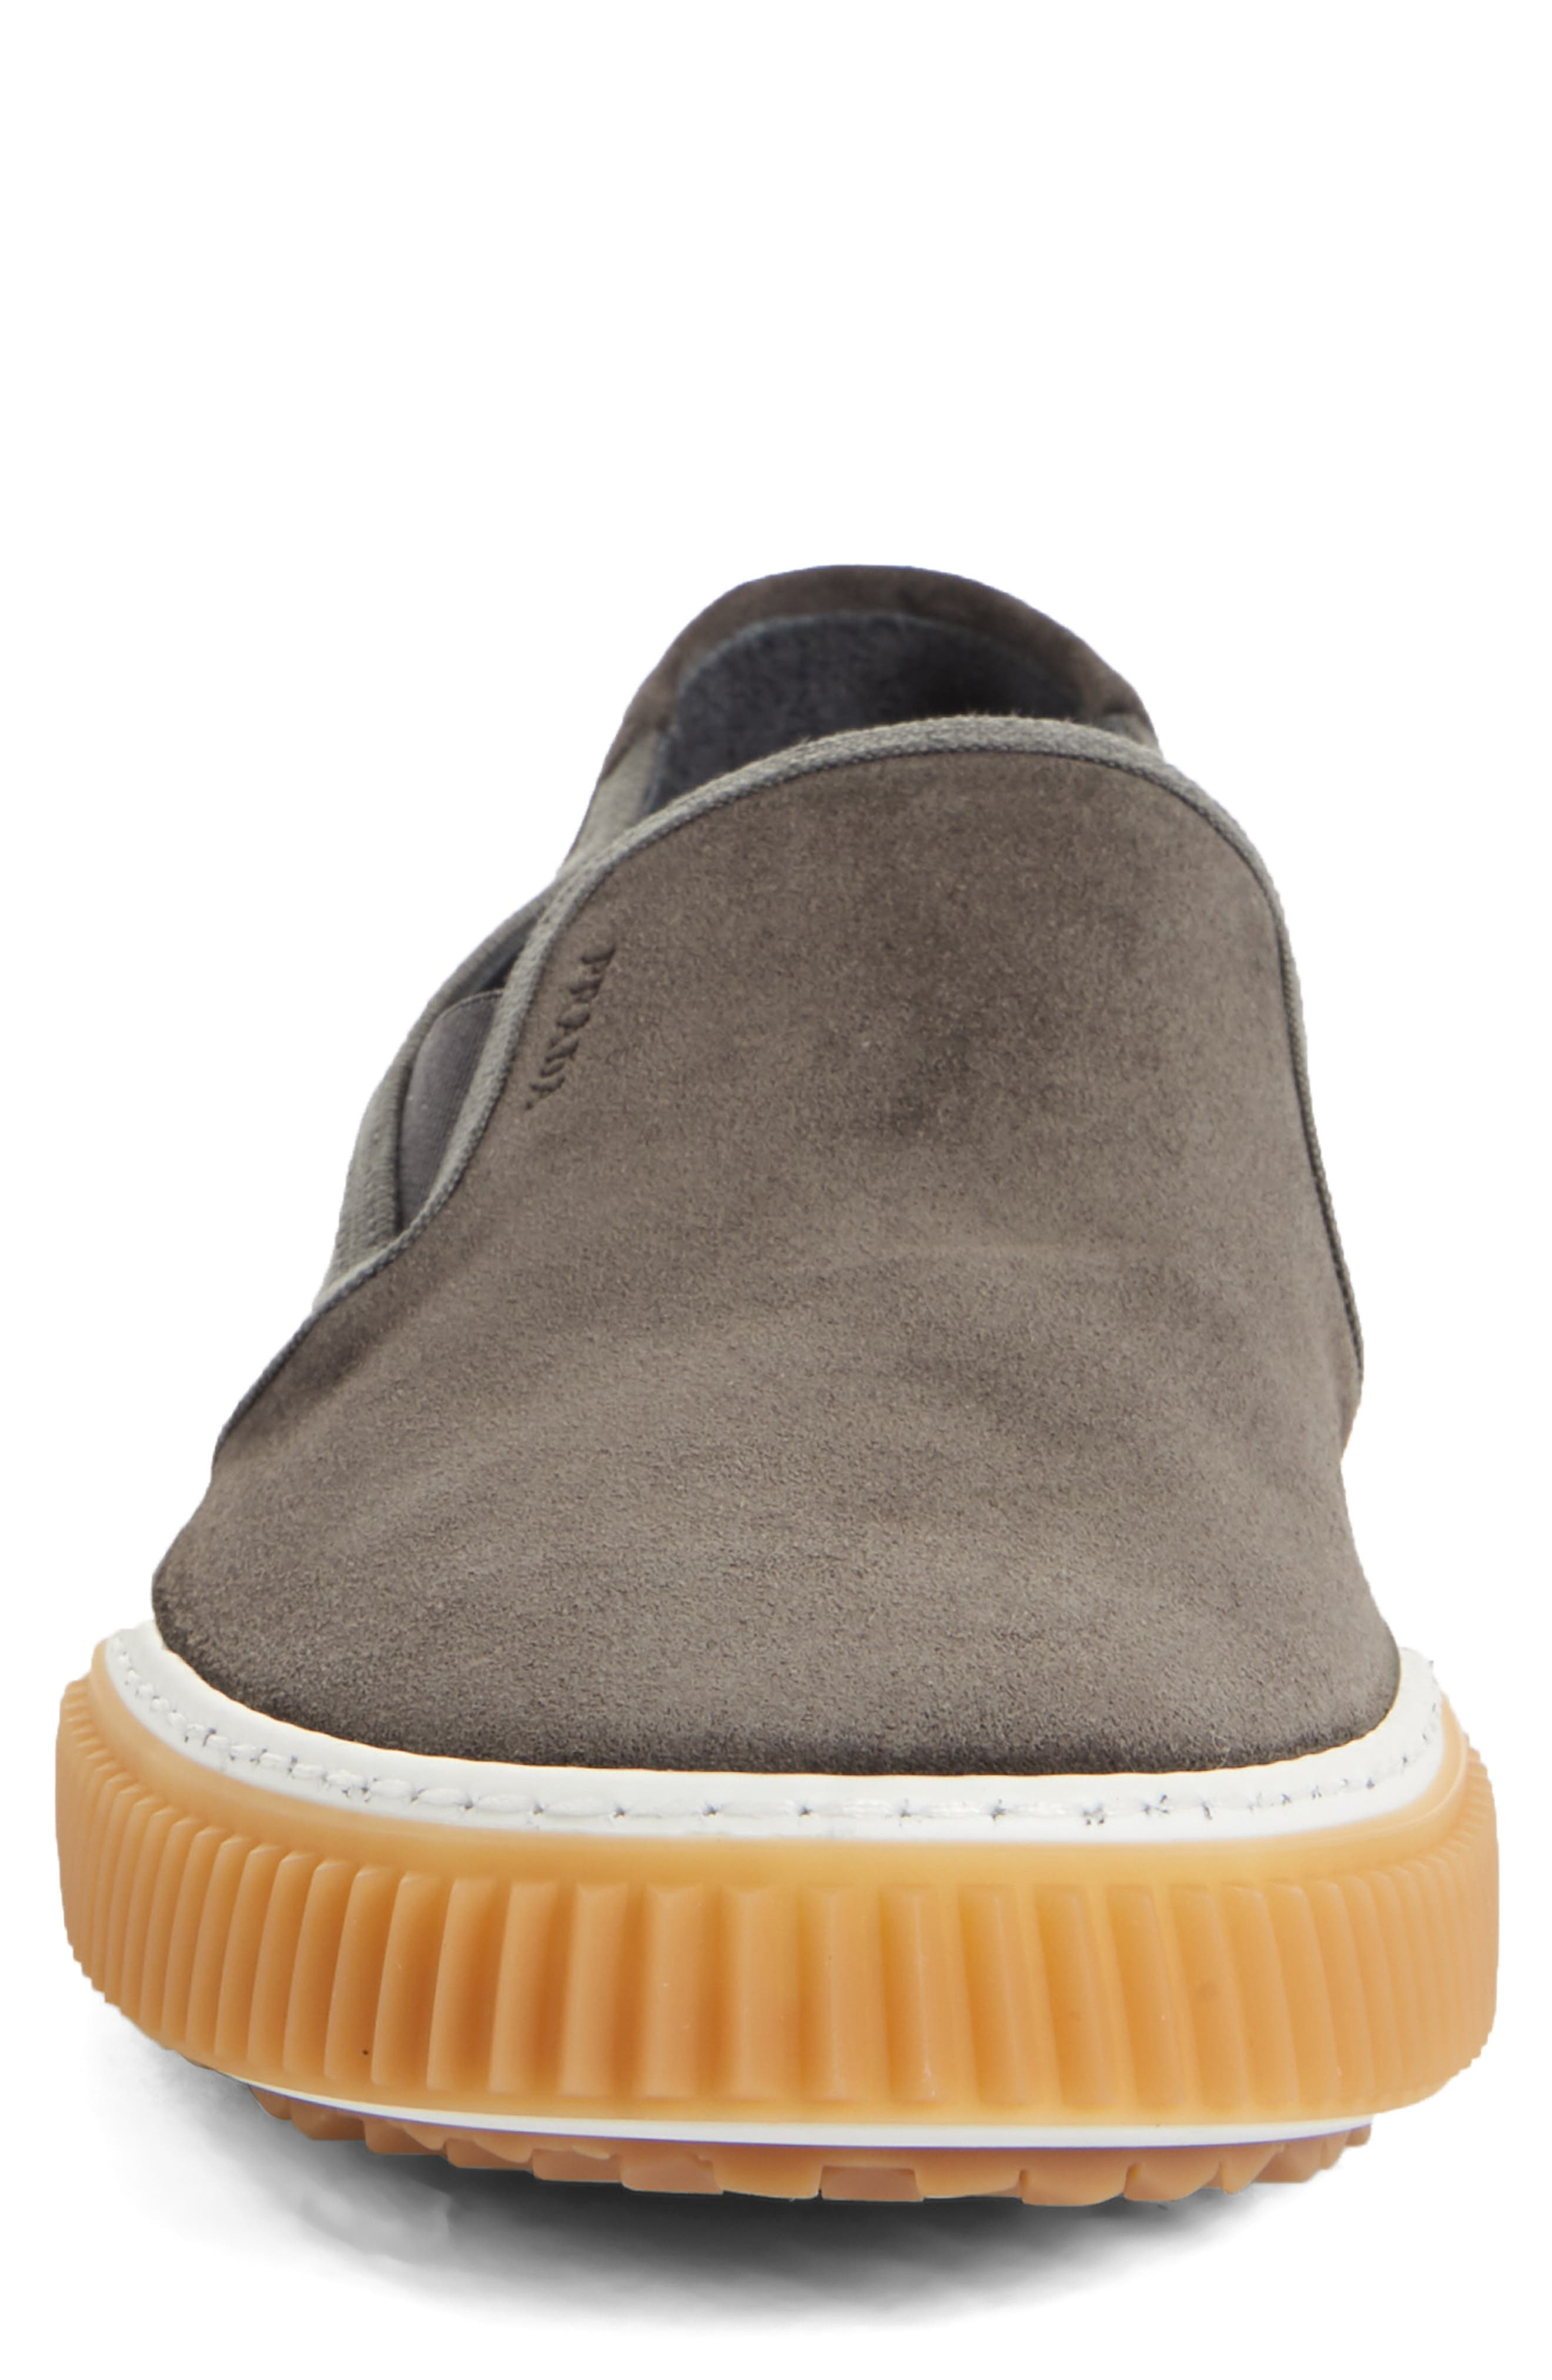 Linea Rossa Slip-On,                             Alternate thumbnail 4, color,                             GREY